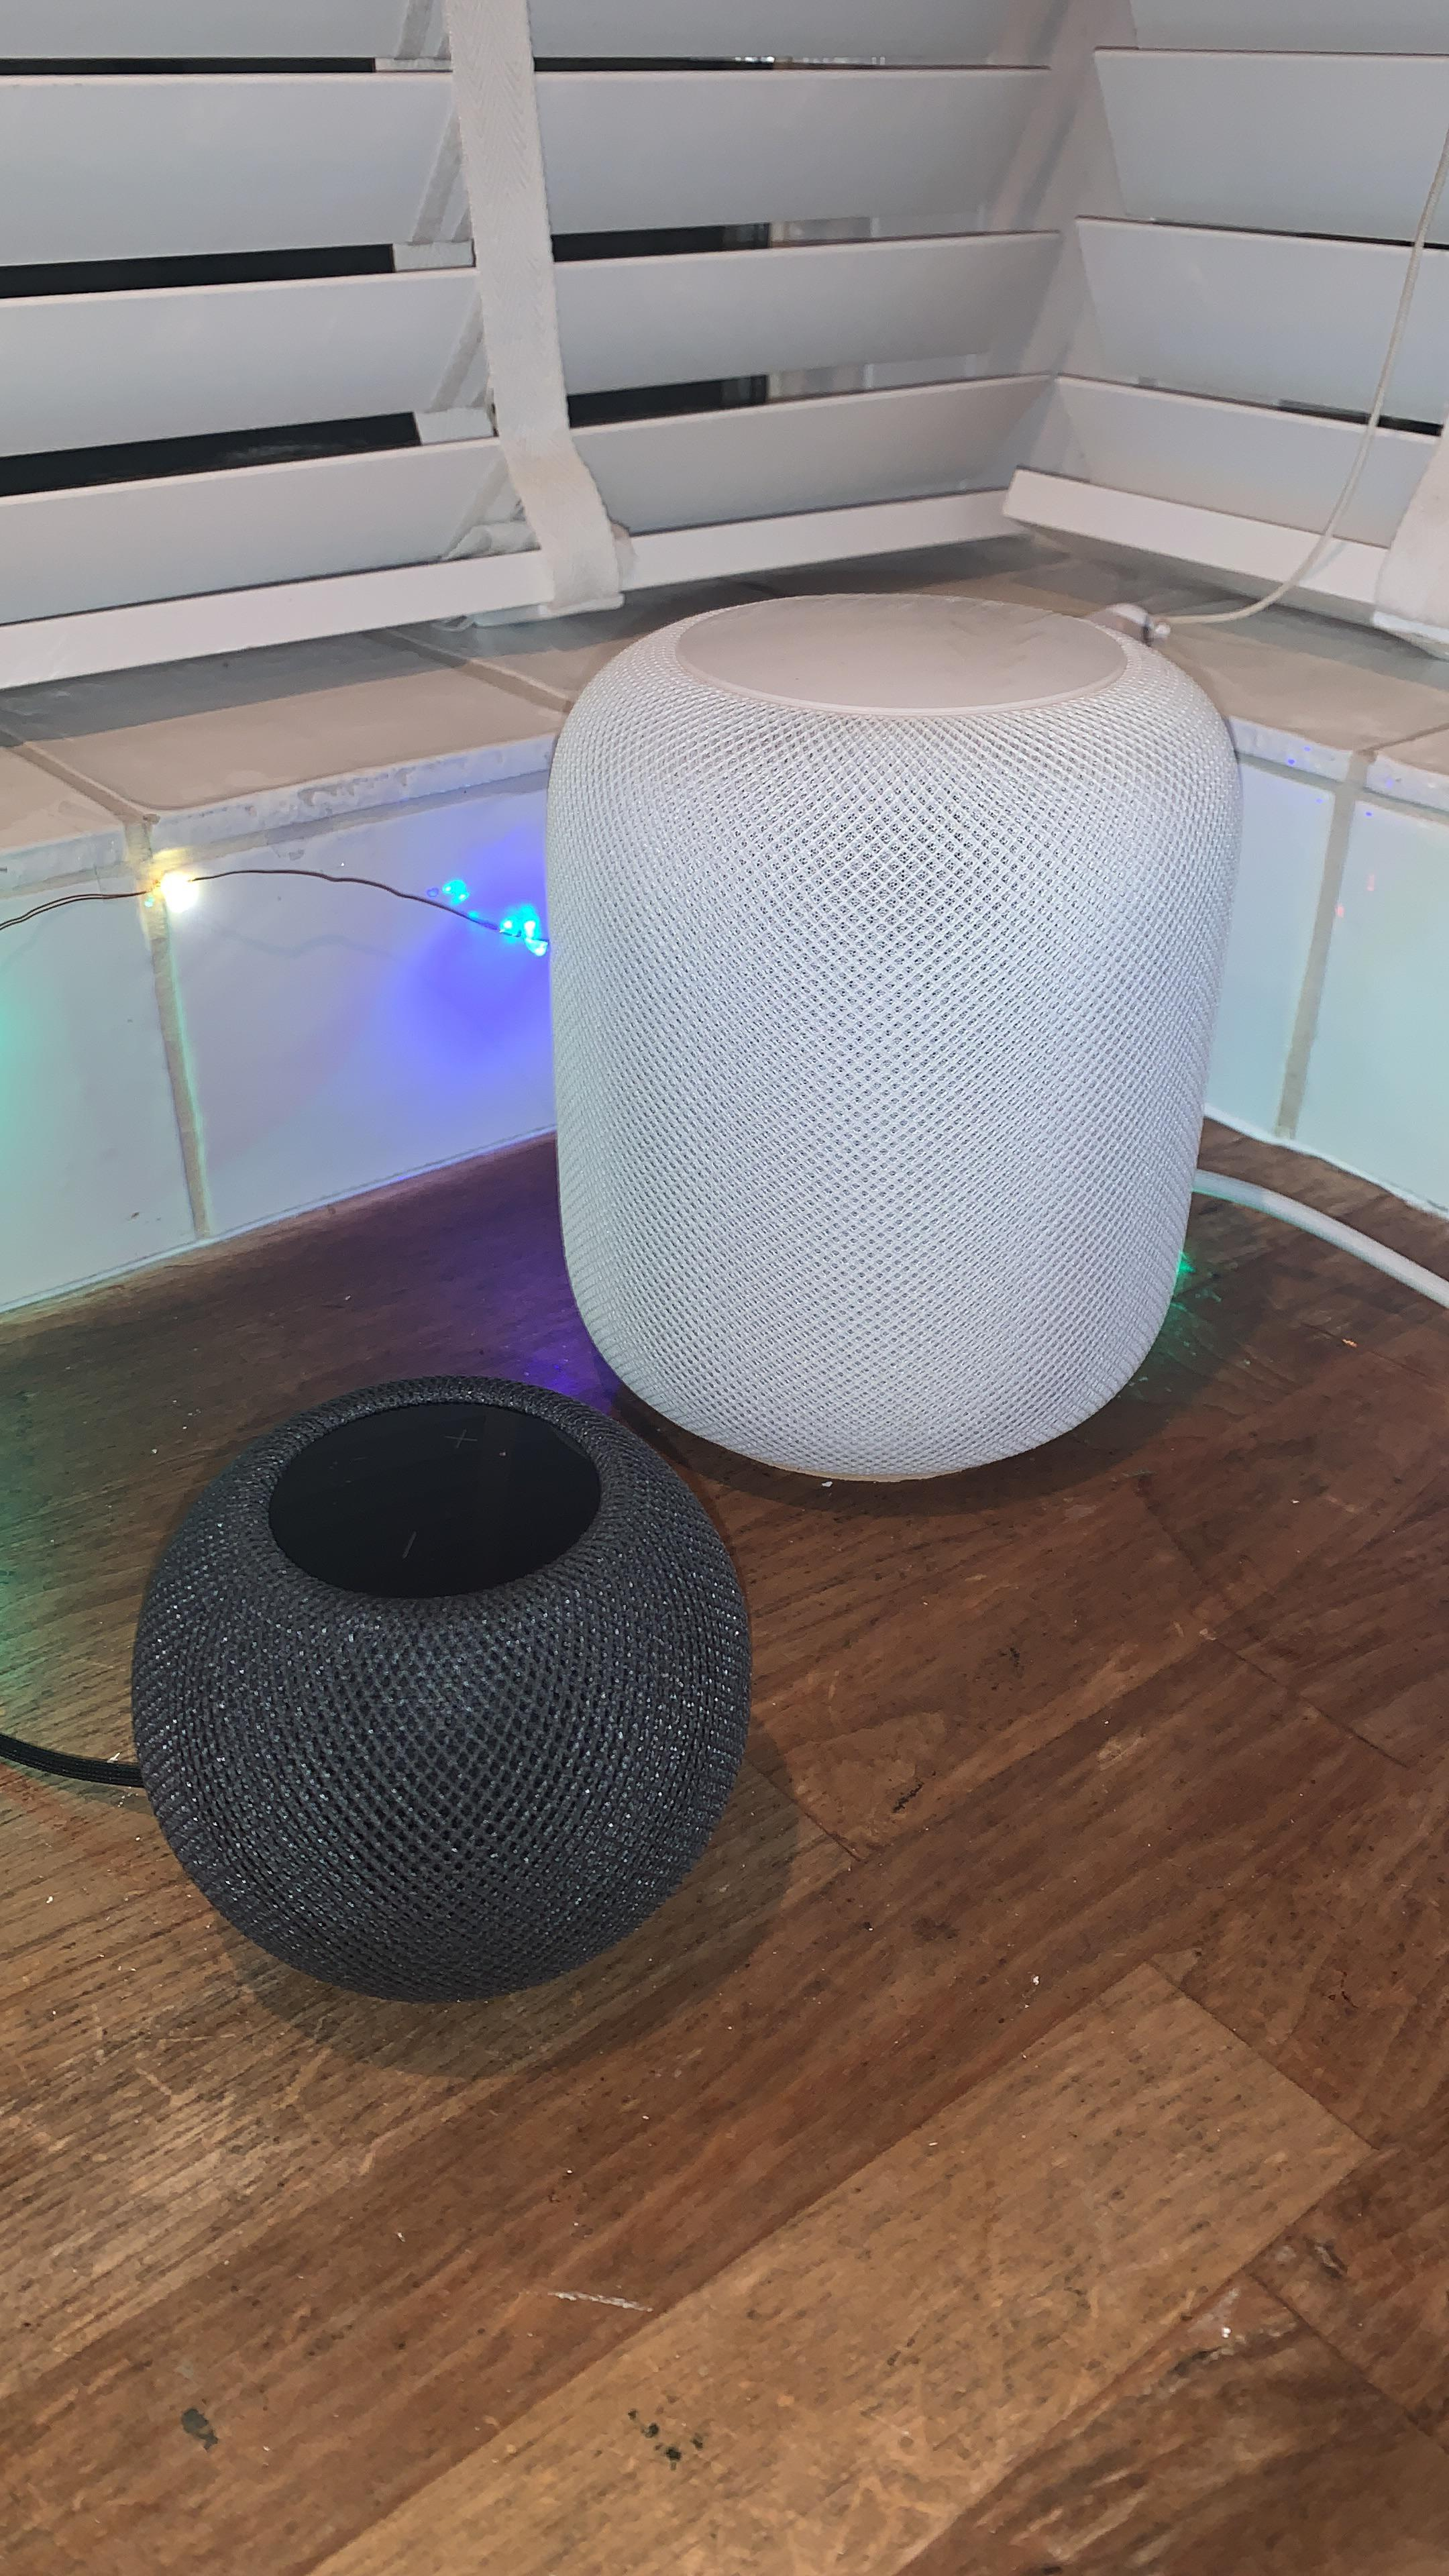 Great addition. The transport cost the same as the speaker